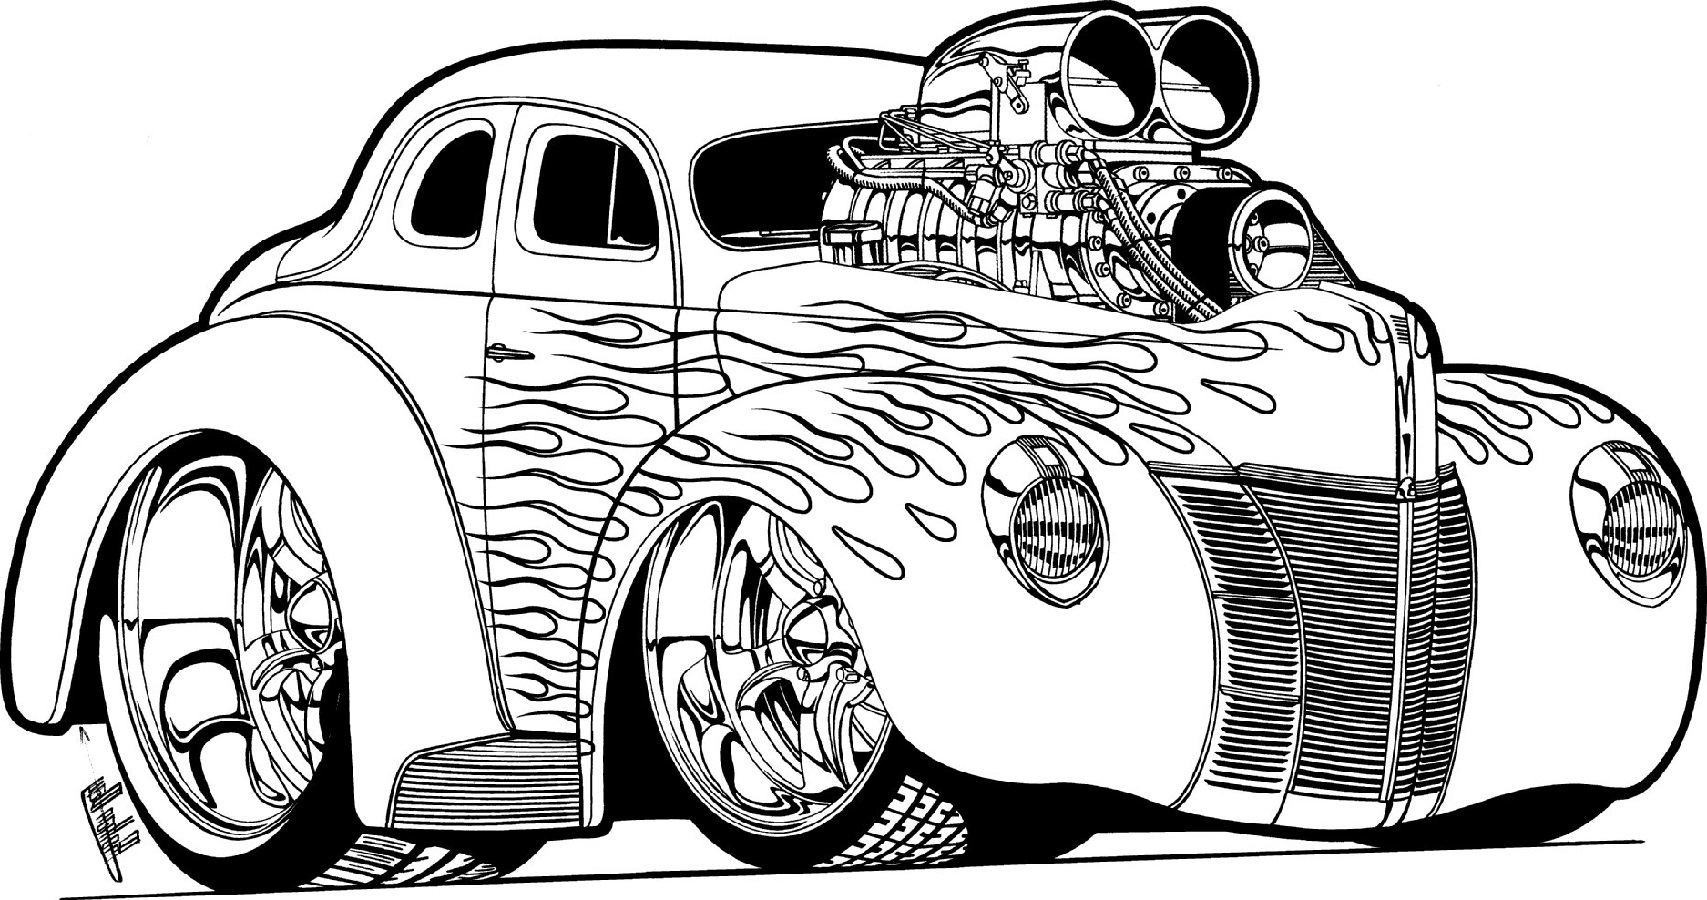 hot rod coloring sheets hot wheels hot rod coloring page free printable coloring hot rod sheets coloring